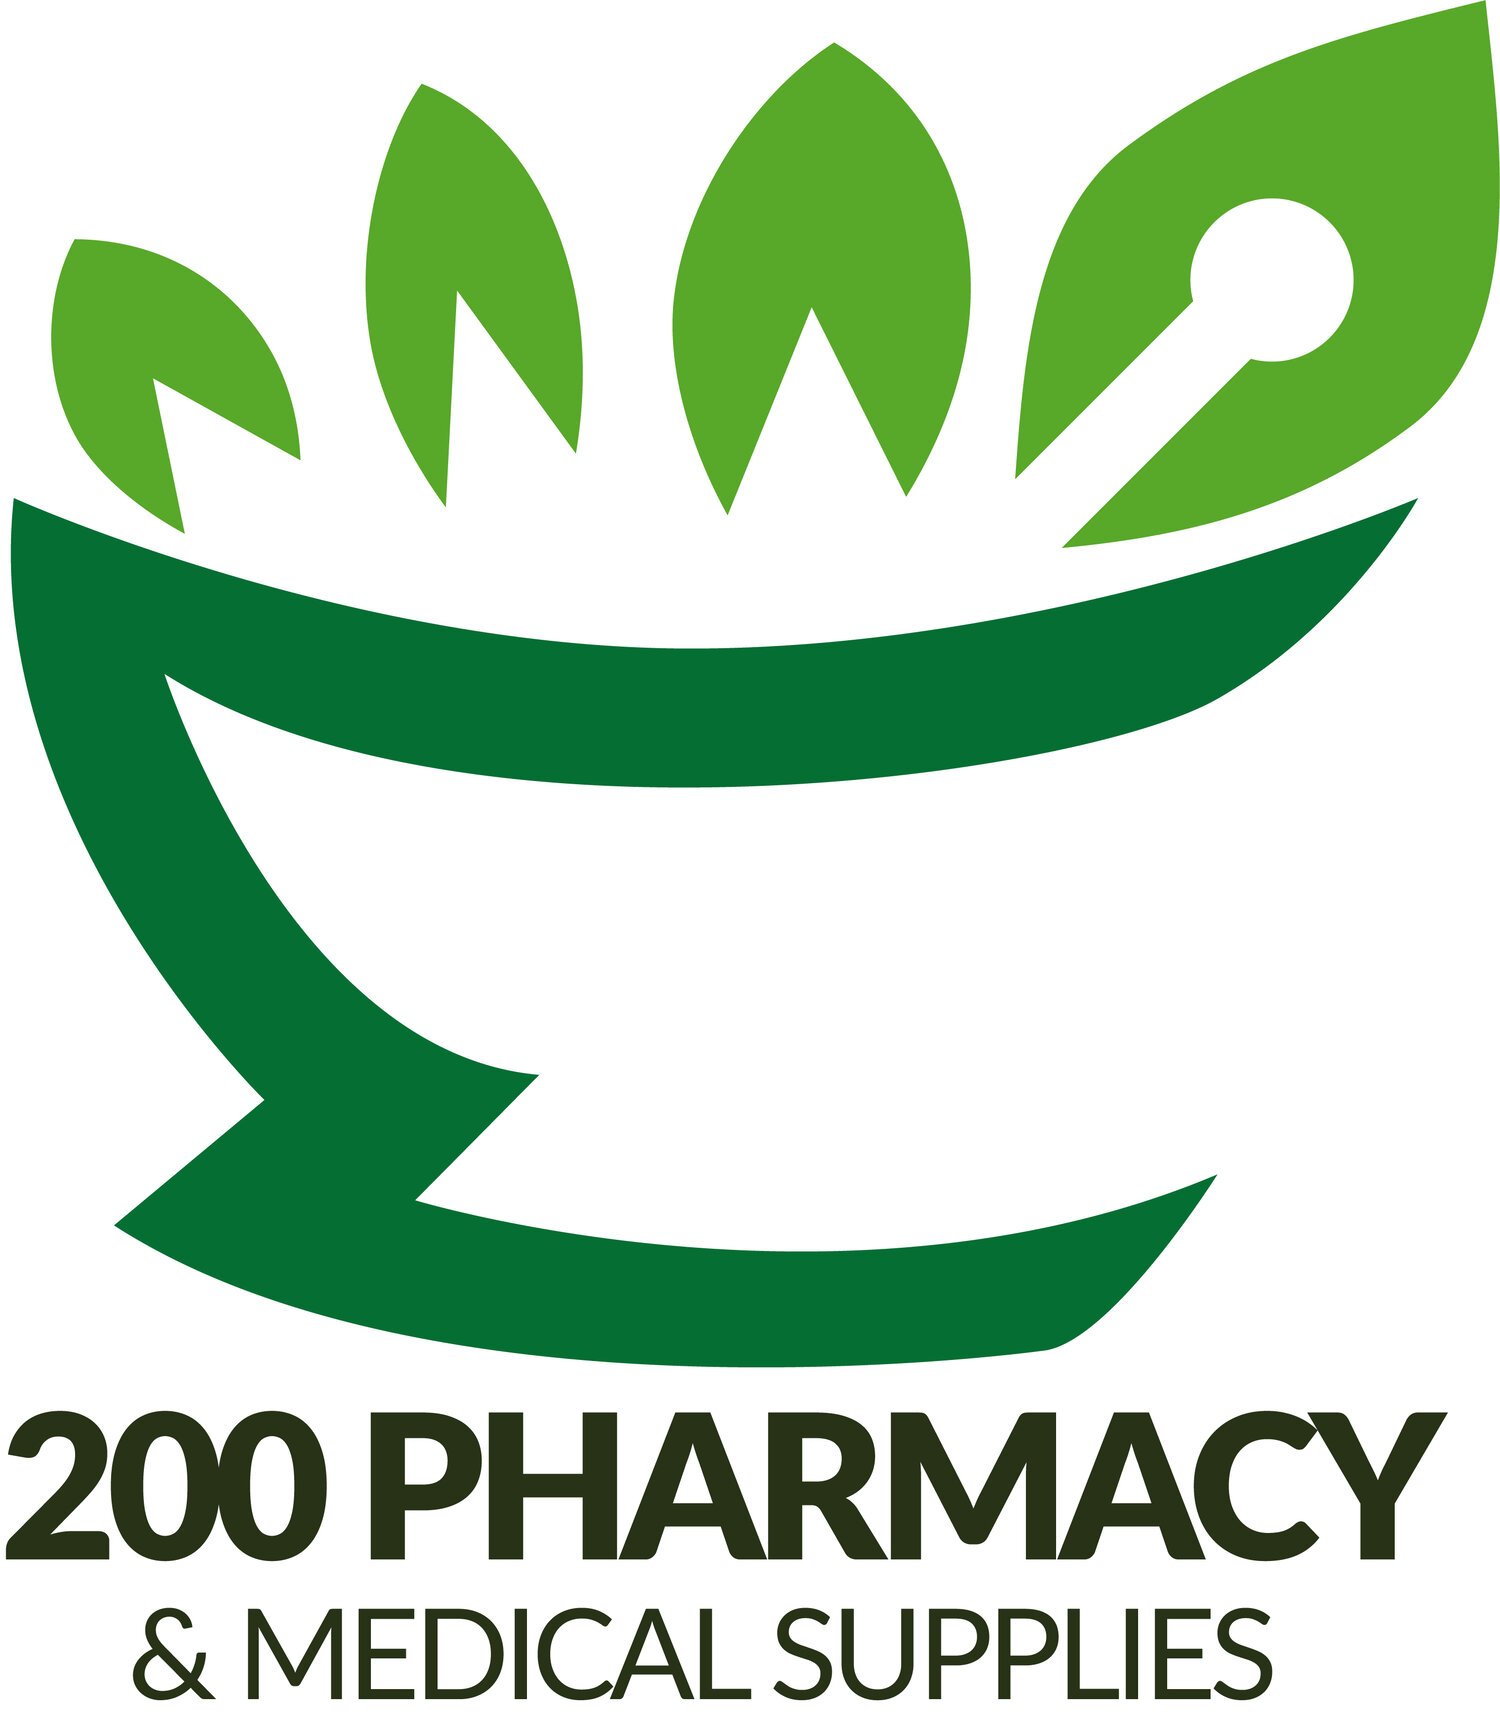 200 Pharmacy & Medical Supplies